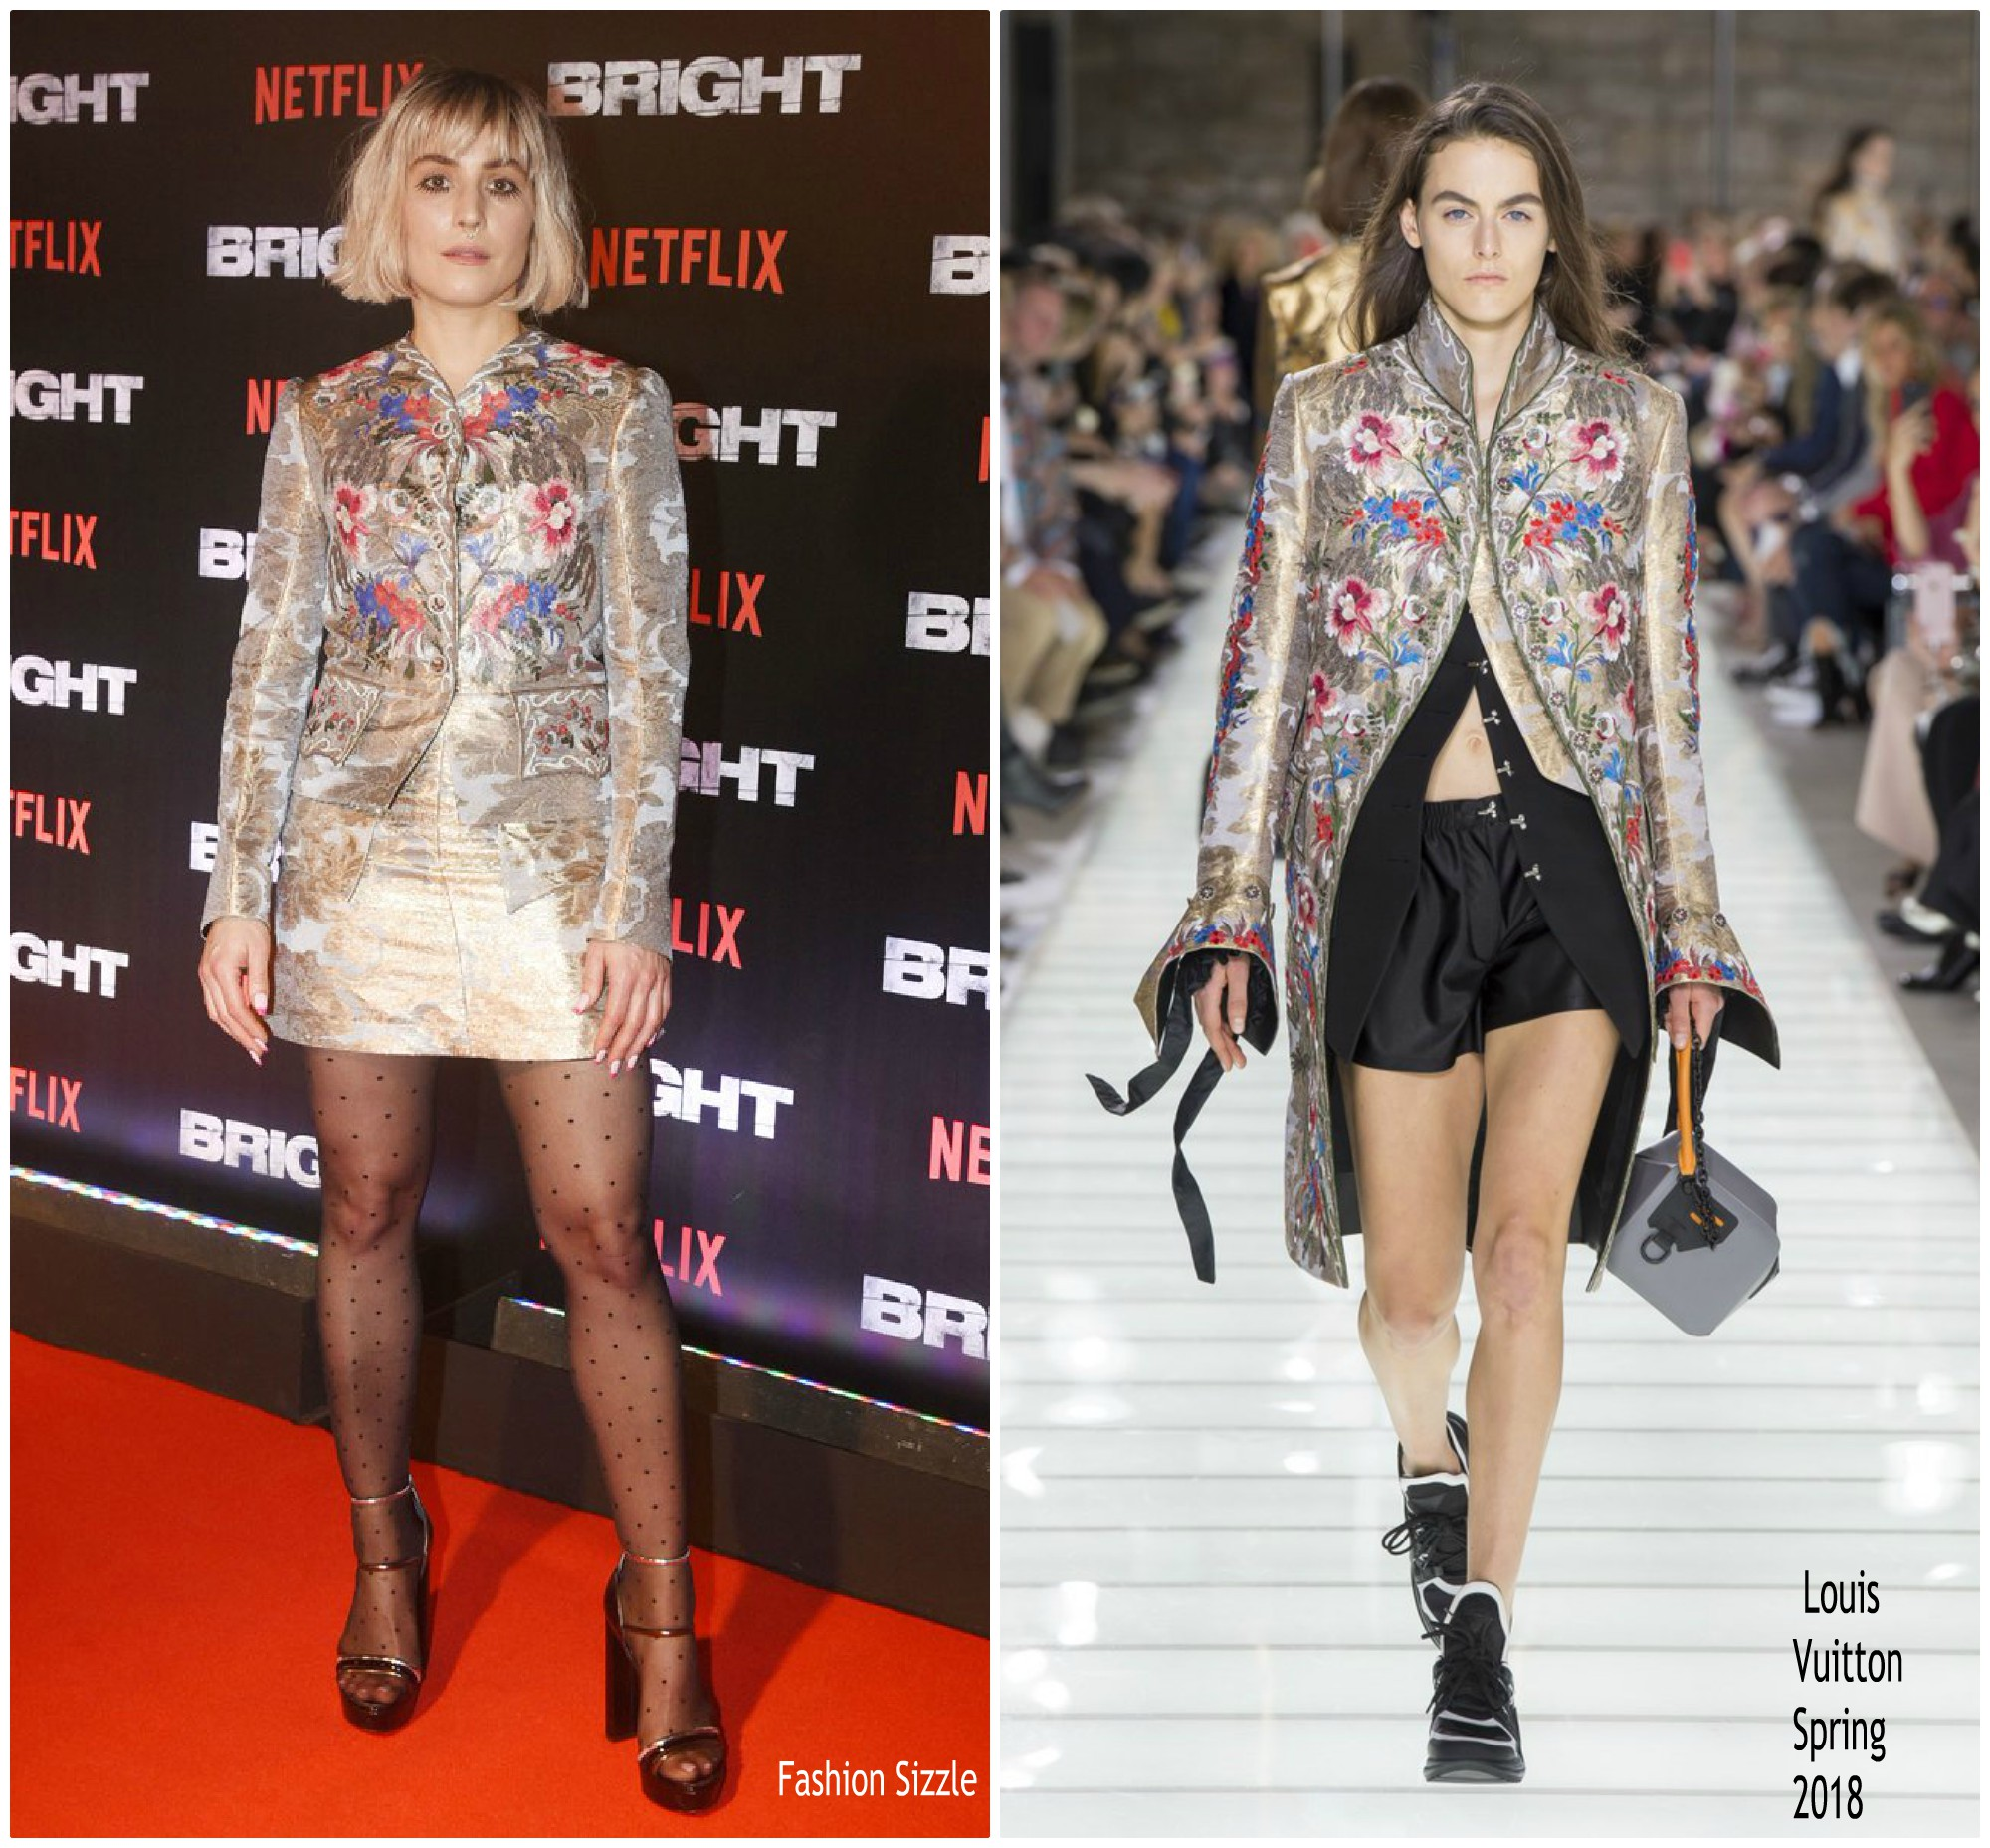 noomi-rapace-in-louis-vuitton-netflixs-bright-mubai-premiere